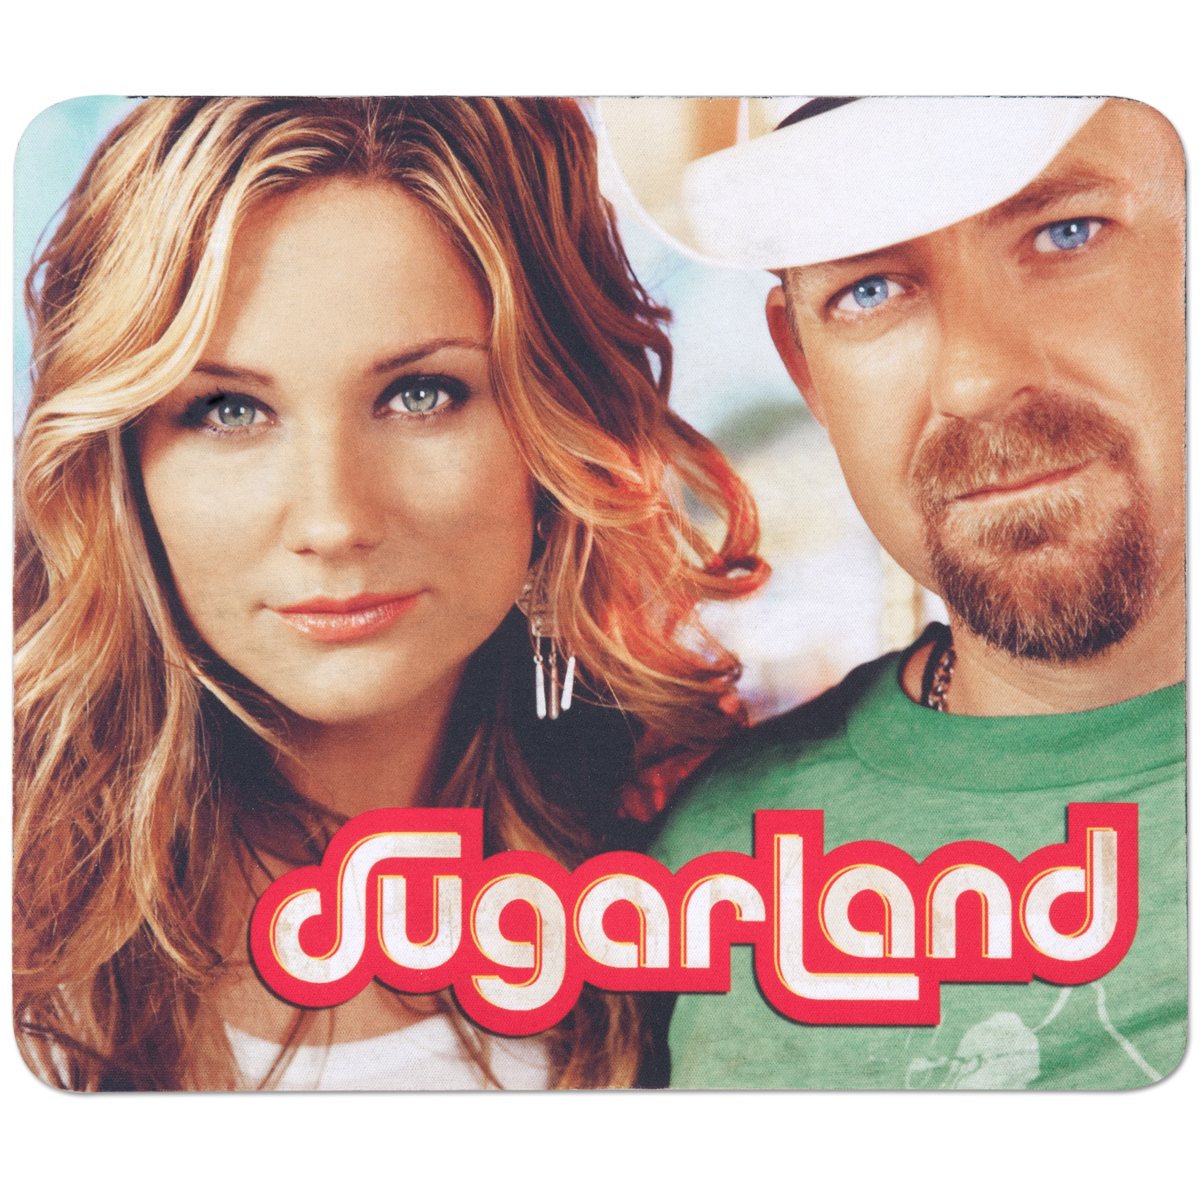 Sugarland Mouse Pad